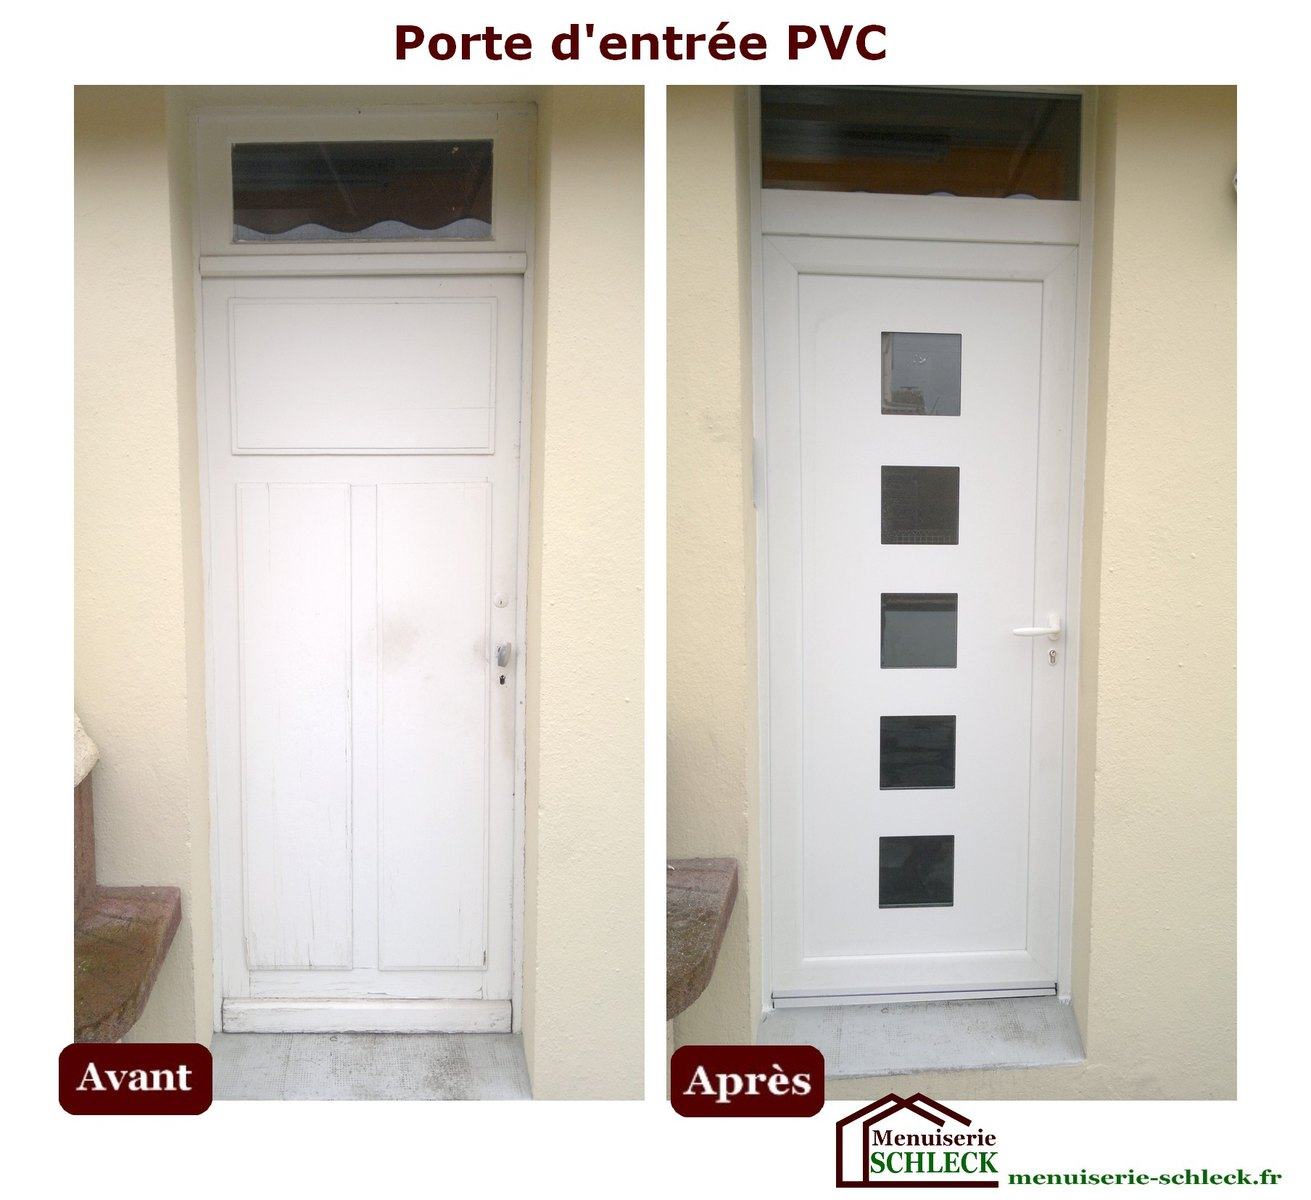 Menuiserie rge schleck nos r alisations for Prix menuiserie pvc renovation